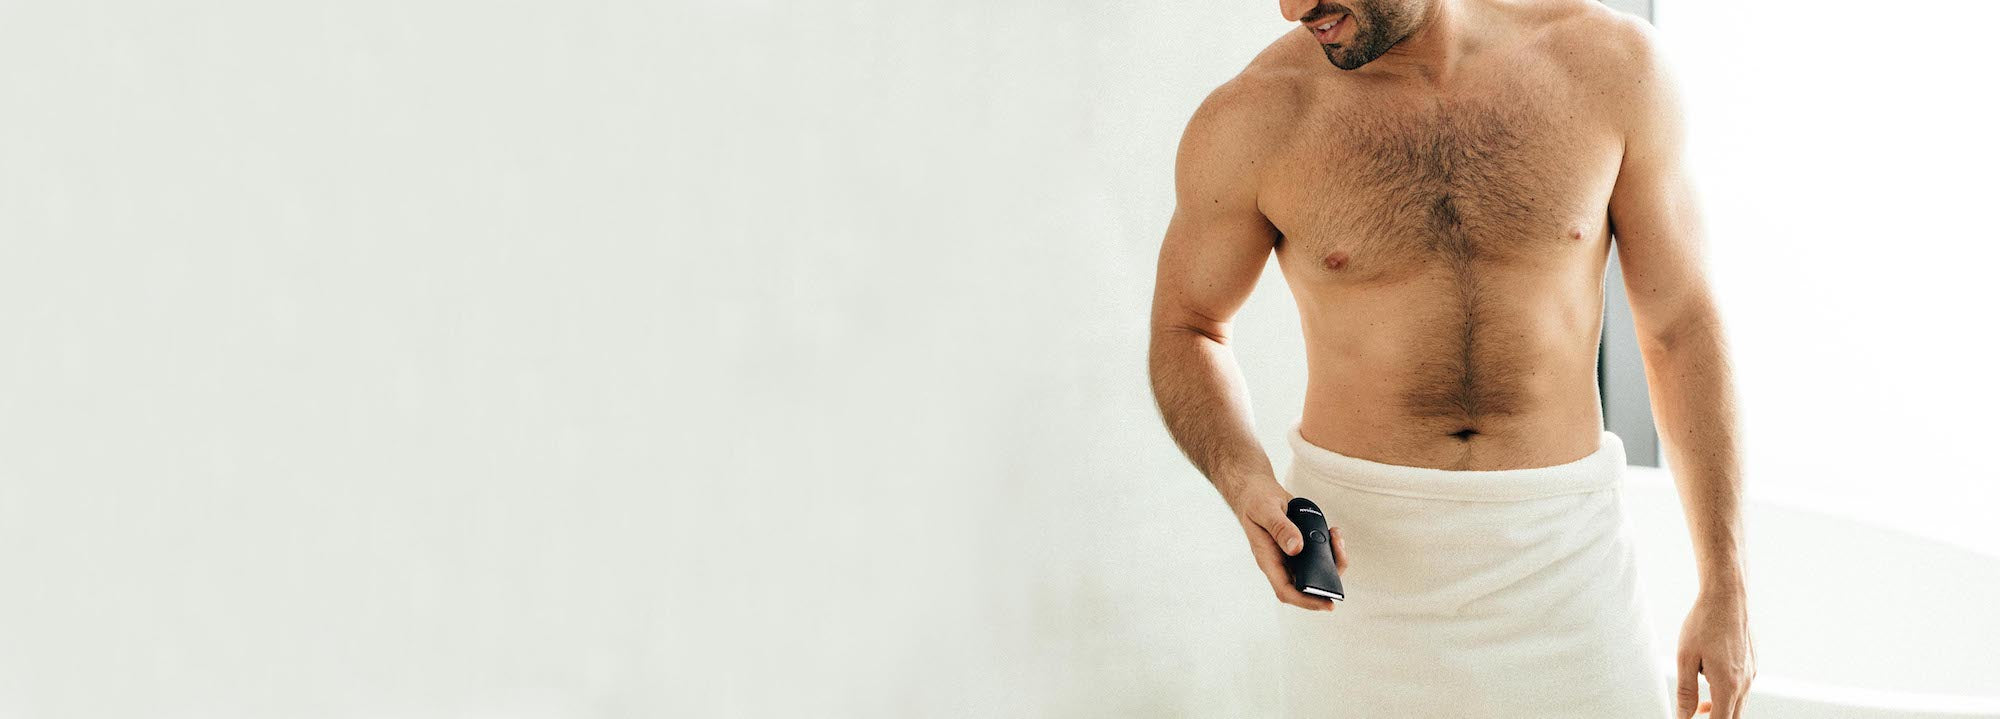 Man on towel holding the meridian trimmer